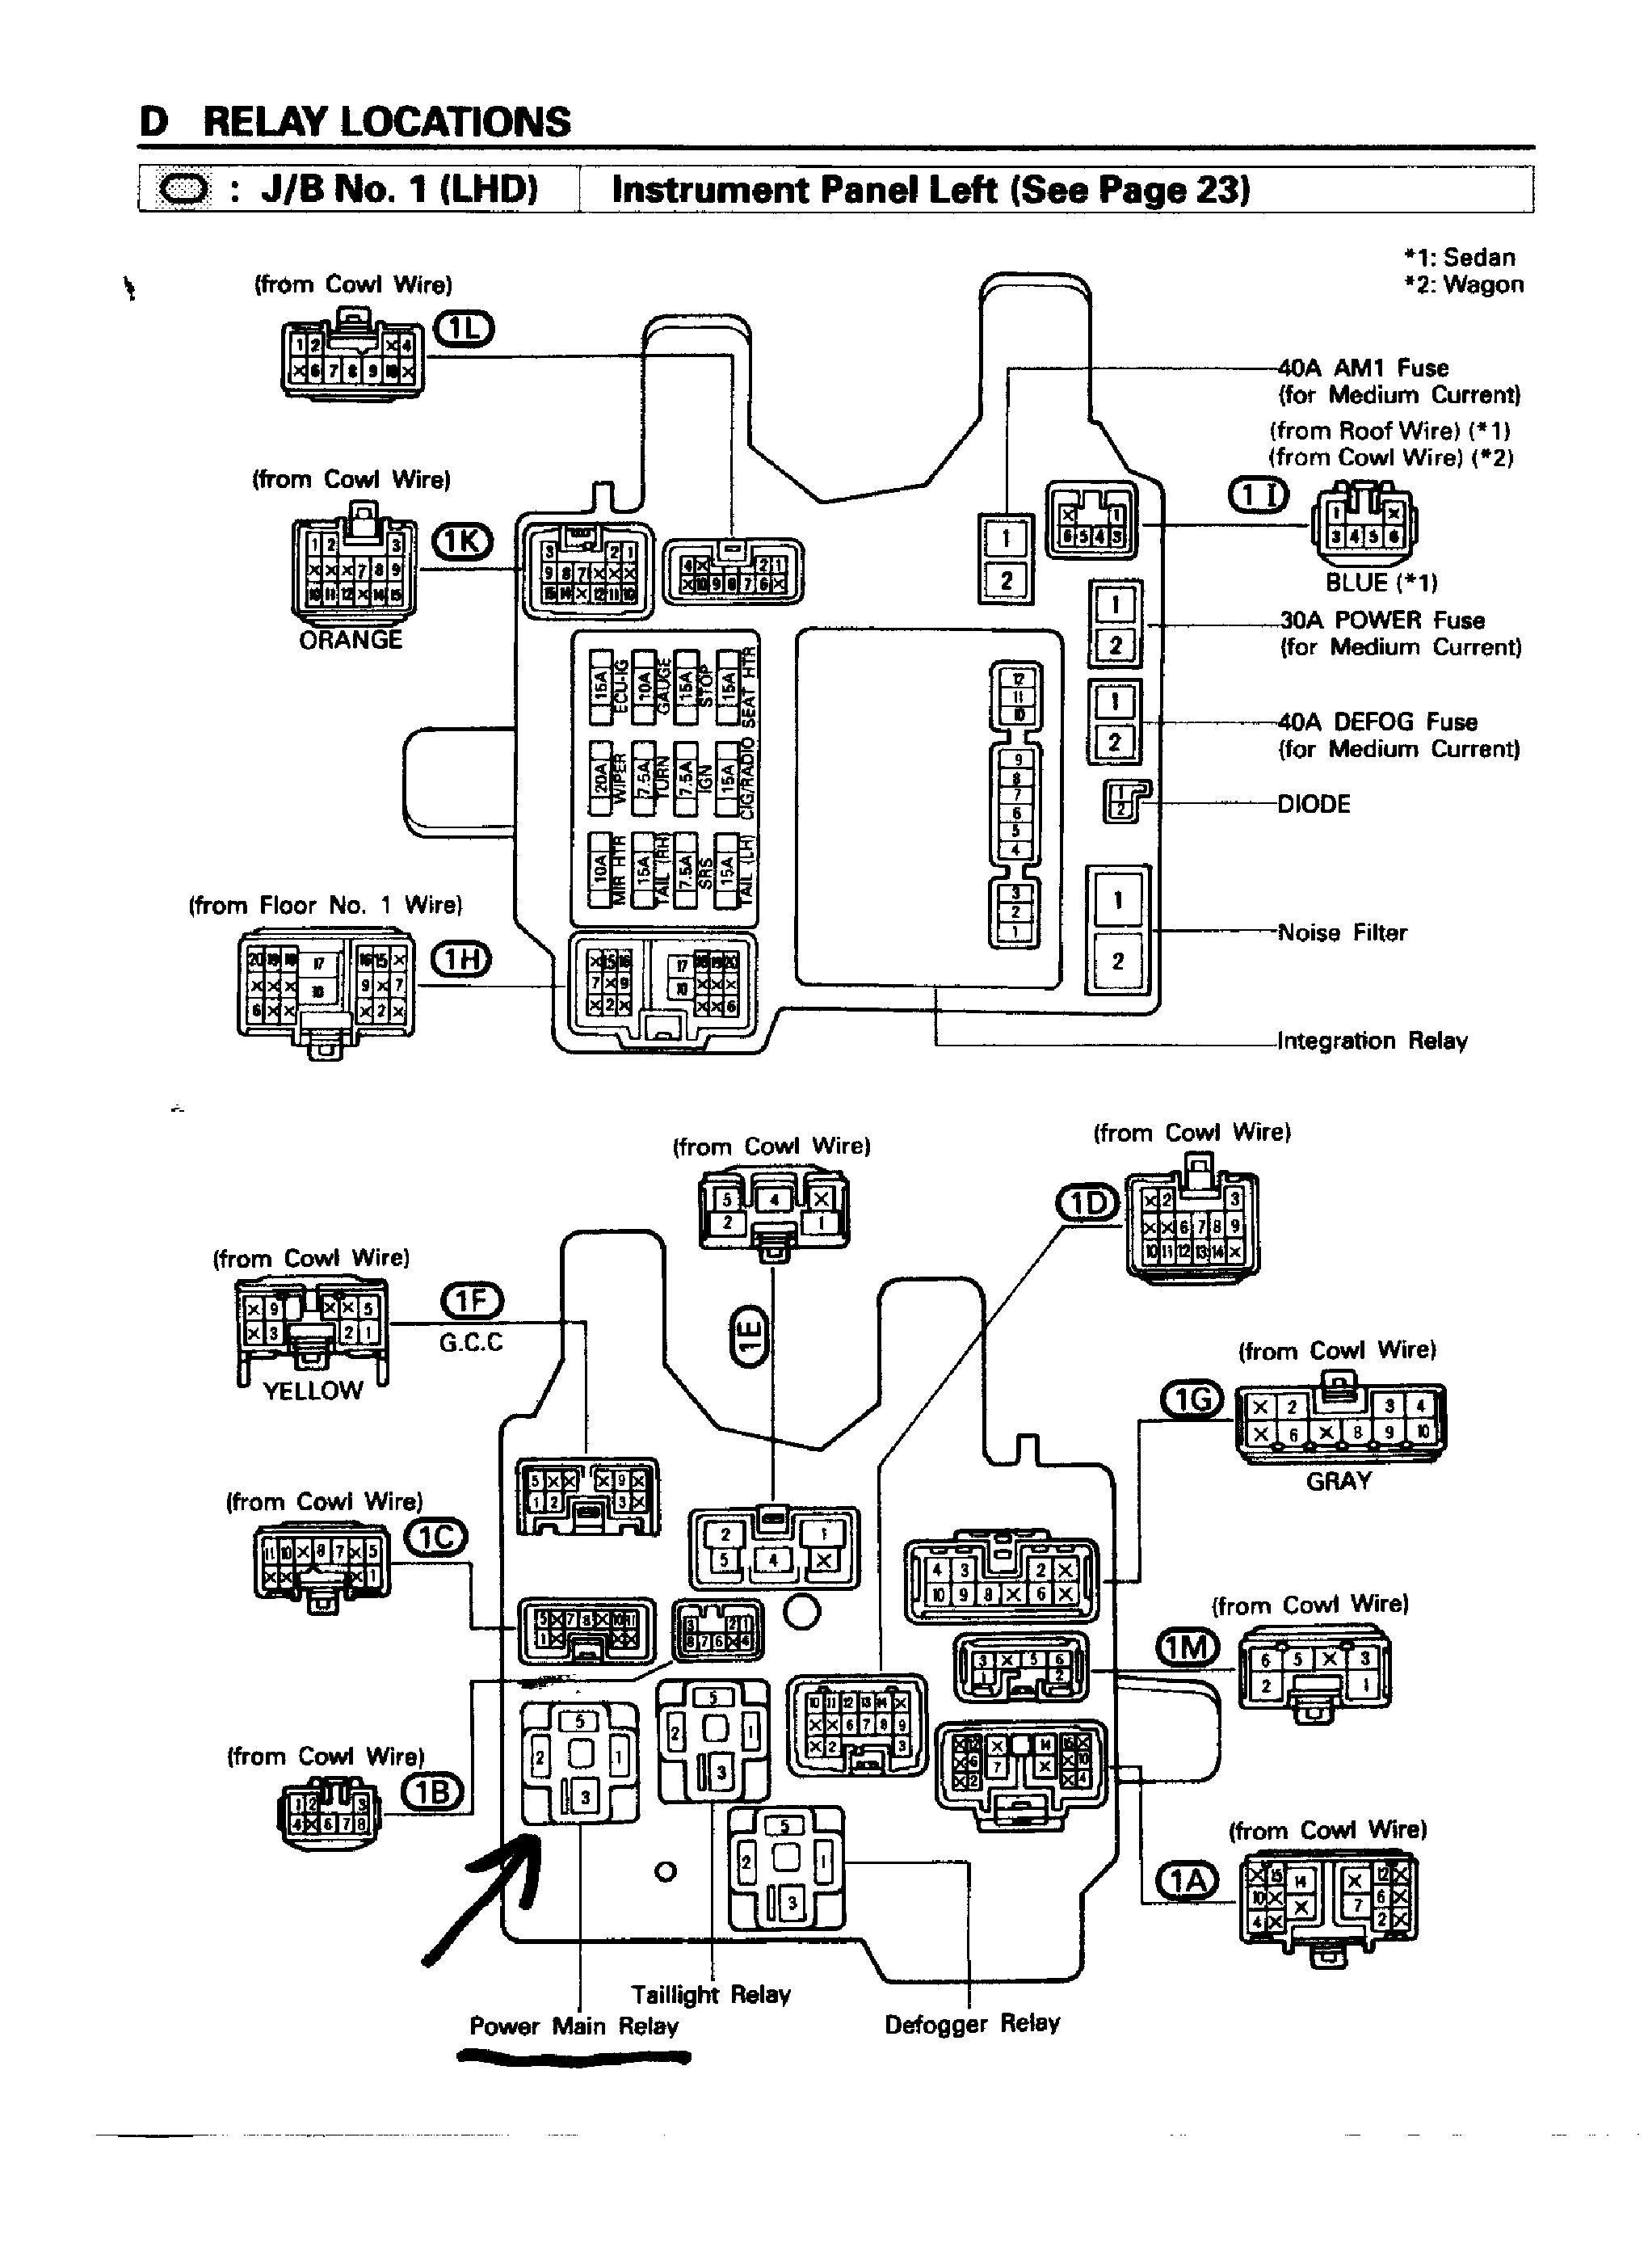 toyota 4runner fuse box diagram vdFAAjC fuse box diagram for 1996 toyota camry fuse wiring diagrams Toyota Wiring Diagrams Color Code at readyjetset.co